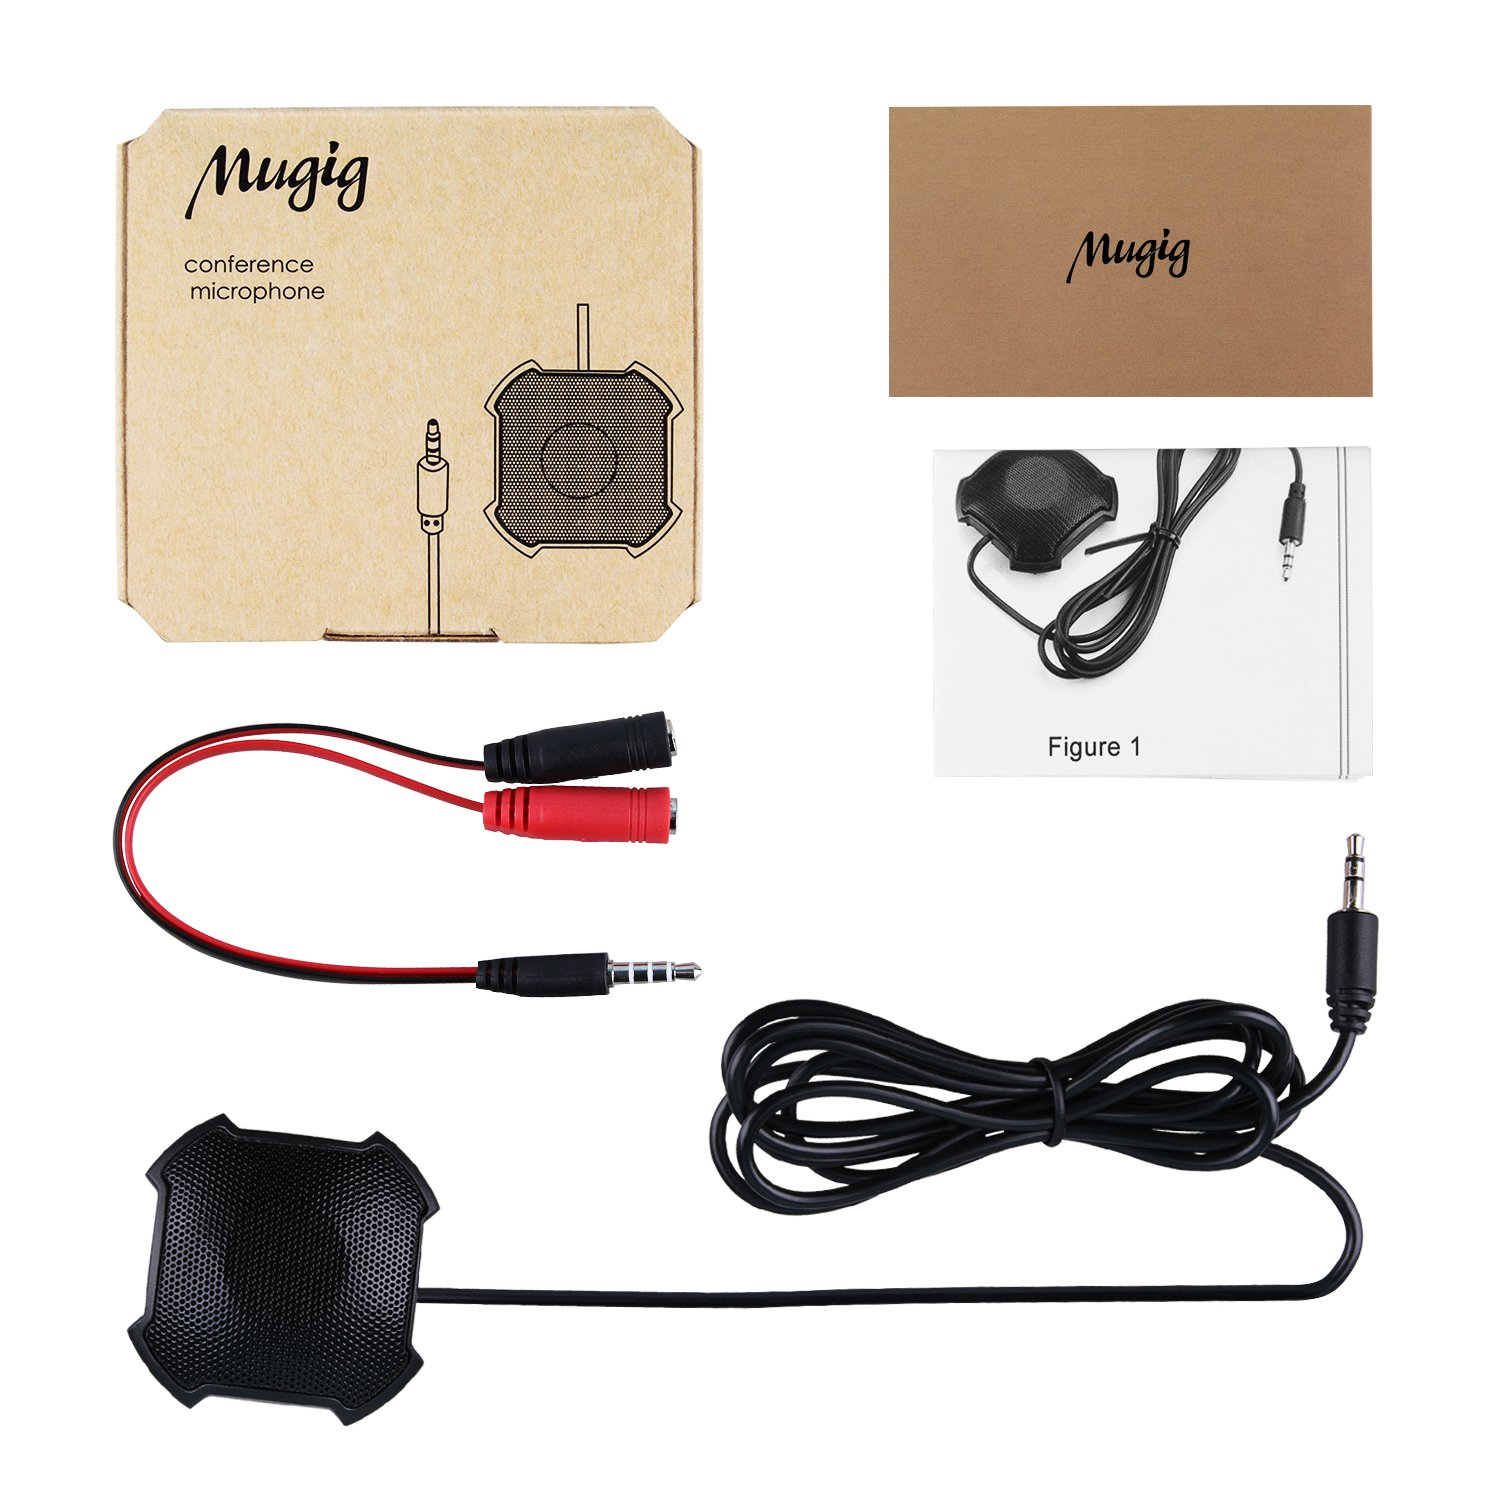 Mugig Conference Microphone 3.5mm Plug Boundary Microphone Desktop including Adapter Compatible to Phone and Computer (Windows/Mac) for Meetings, Interviews, Podcasting, Recording etc.